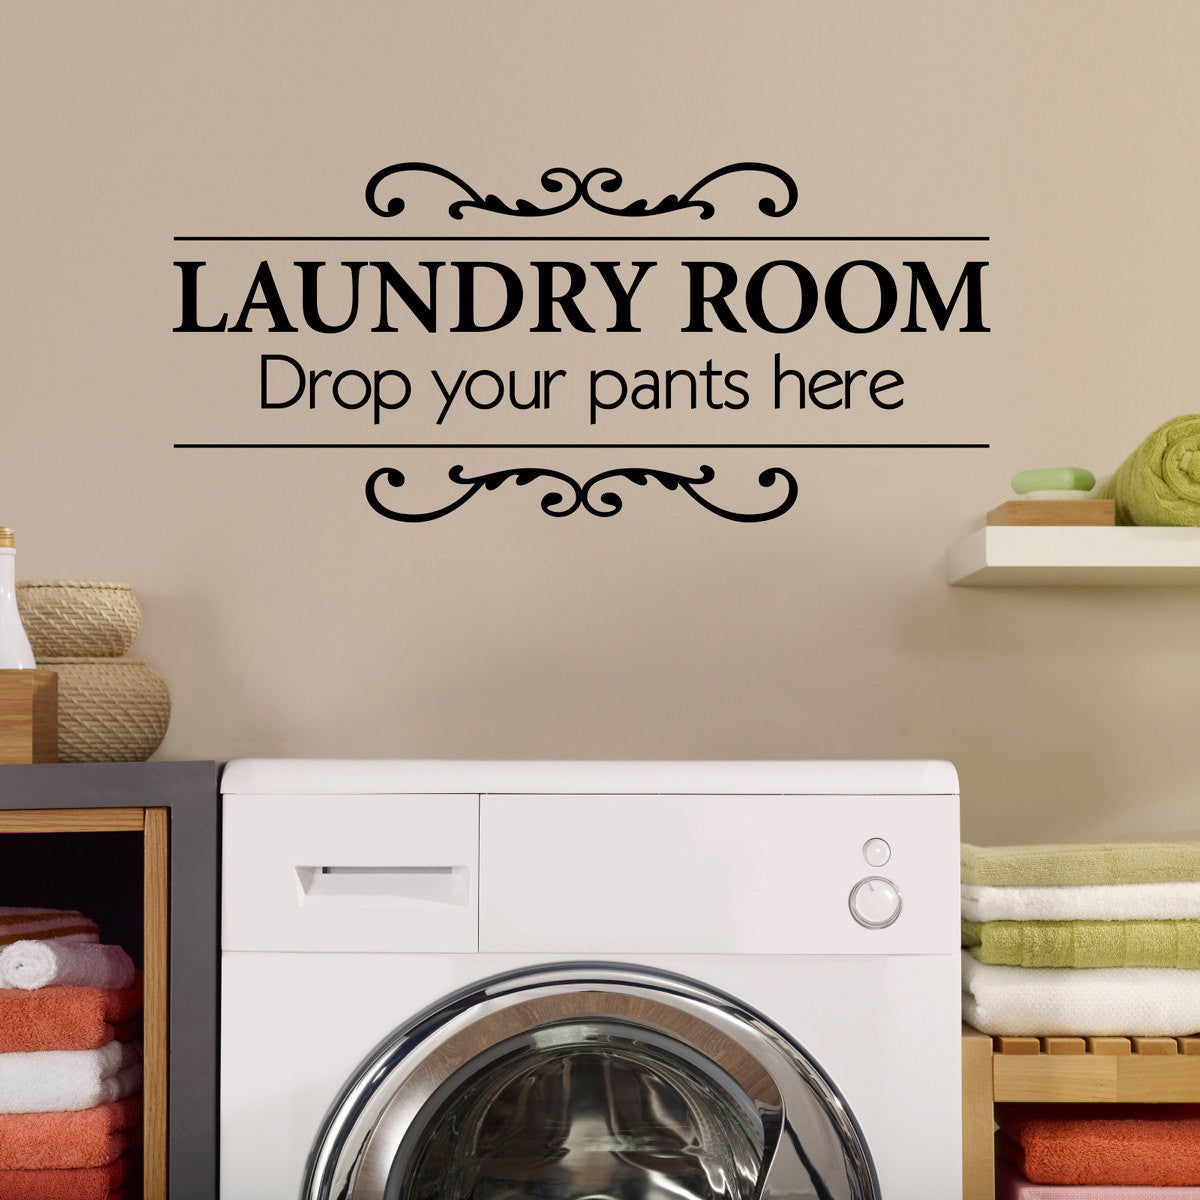 Laundry room wall decal drop your pants here utility room laundry room wall decal drop your pants here utility room decal large amipublicfo Images